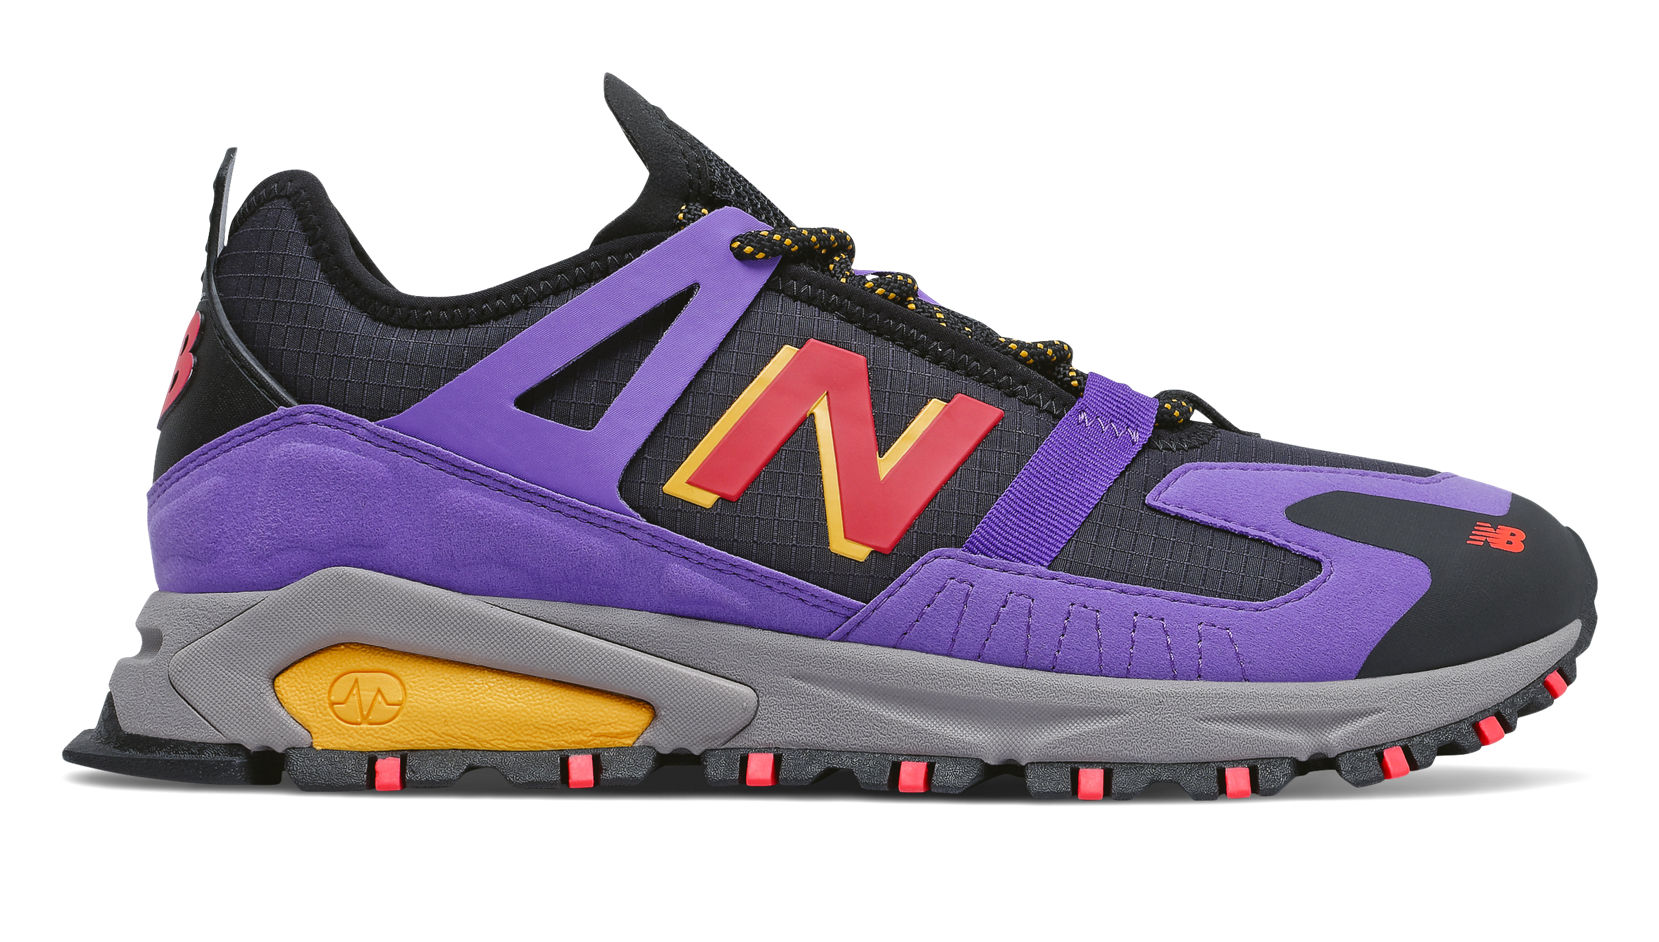 new balance XRCT, all terrain, sneakers, week 41, releases